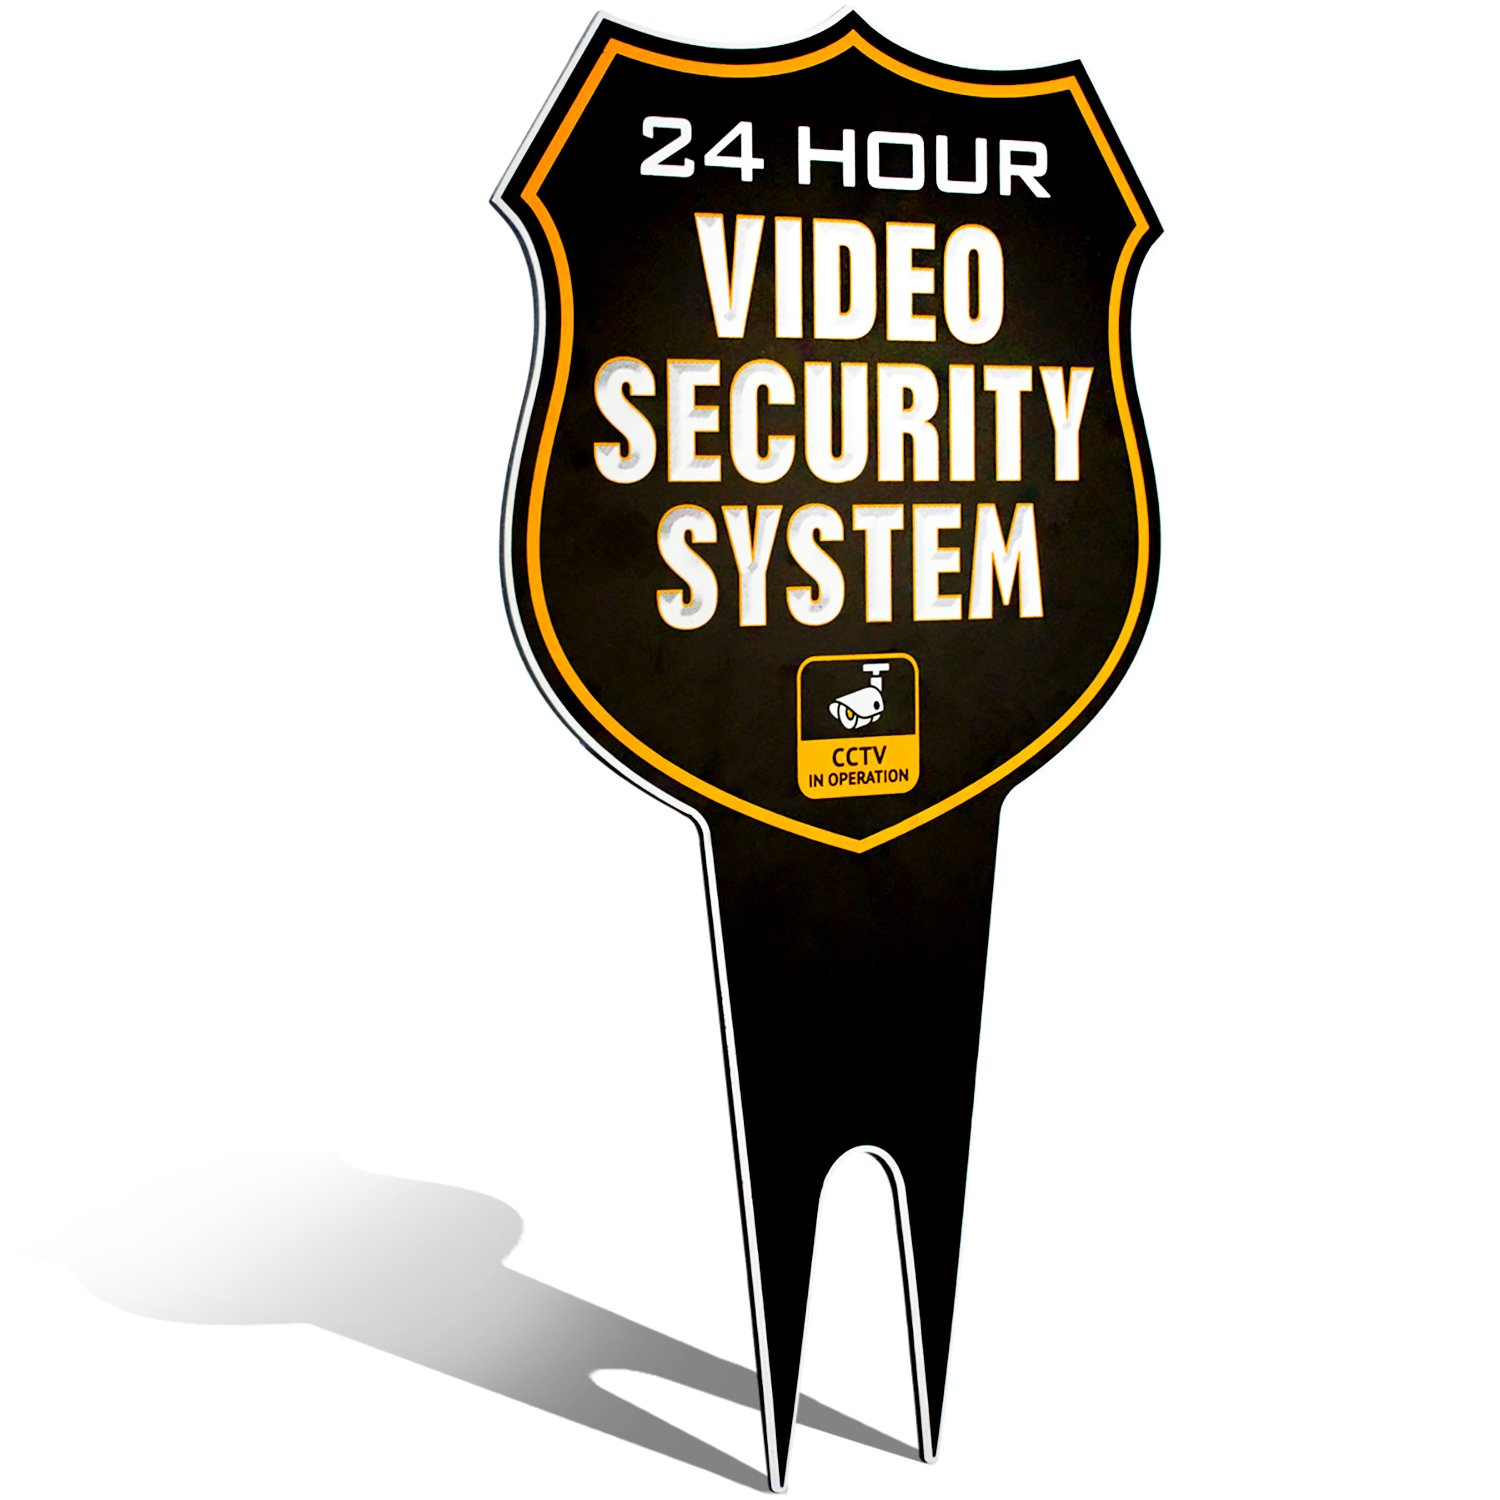 Ultra Reflective Warning 24 Hour Video Surveillance Security Camera System in Operation Metal Yard Sign | Stylish Laser Cut Shield Design | Heavy Duty 1/8'' Thick DiBond Aluminum (Reflective) by Signs Authority